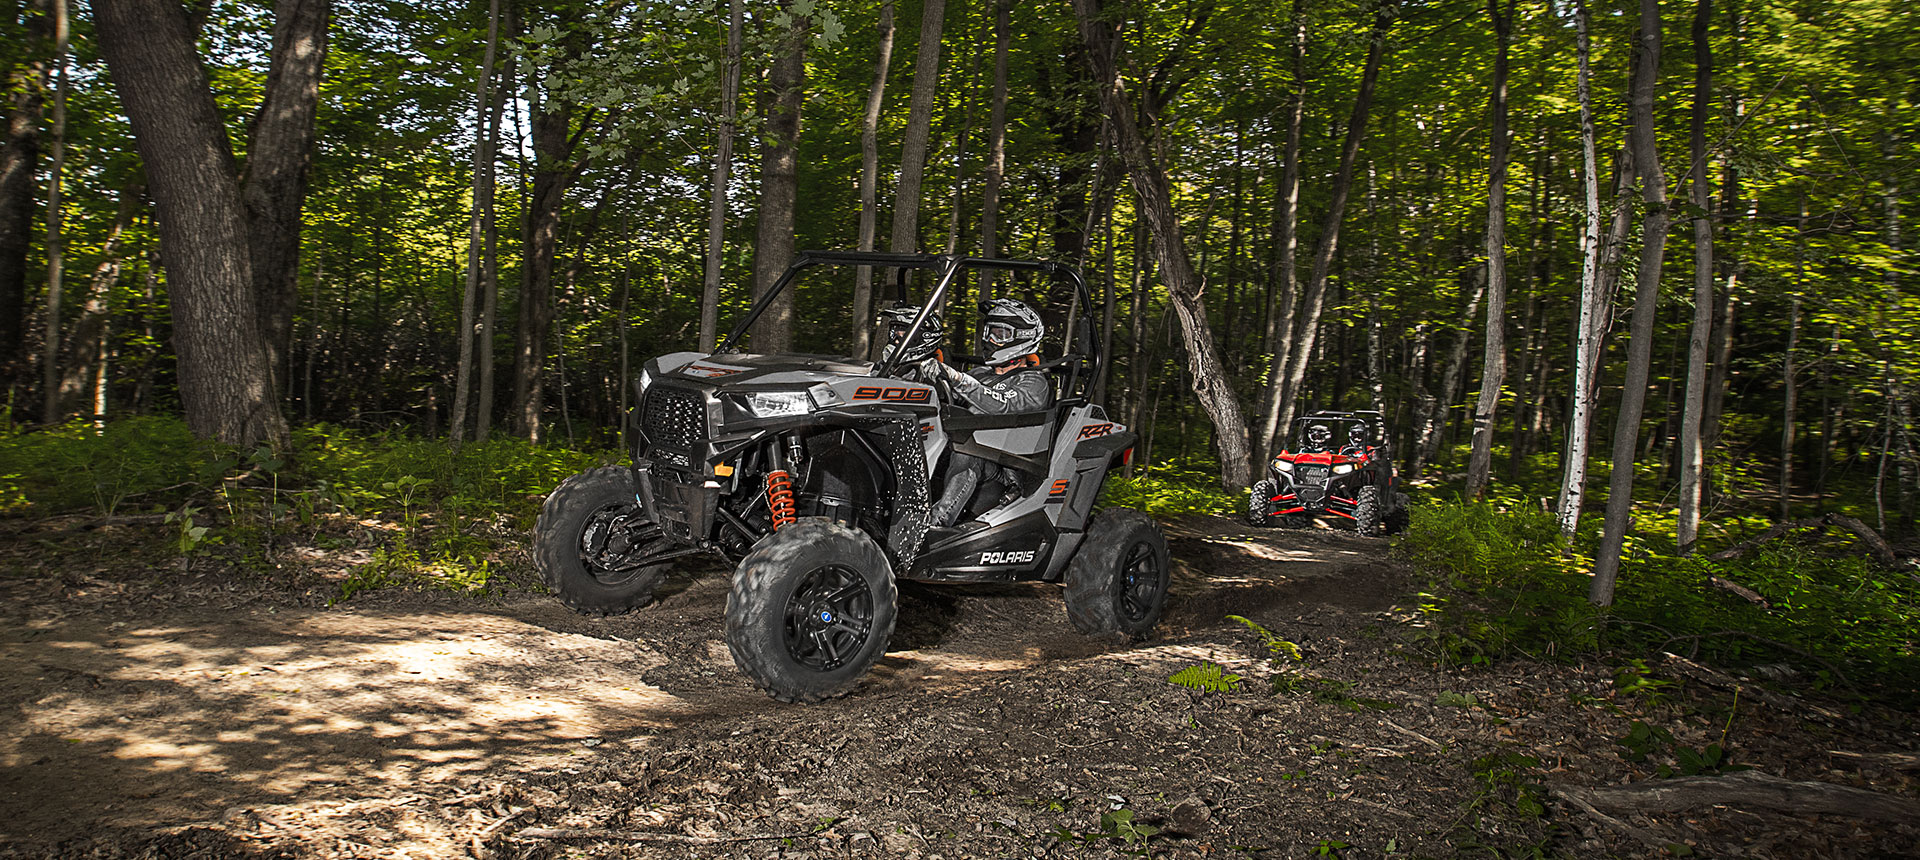 2019 Polaris RZR S 900 EPS in Lumberton, North Carolina